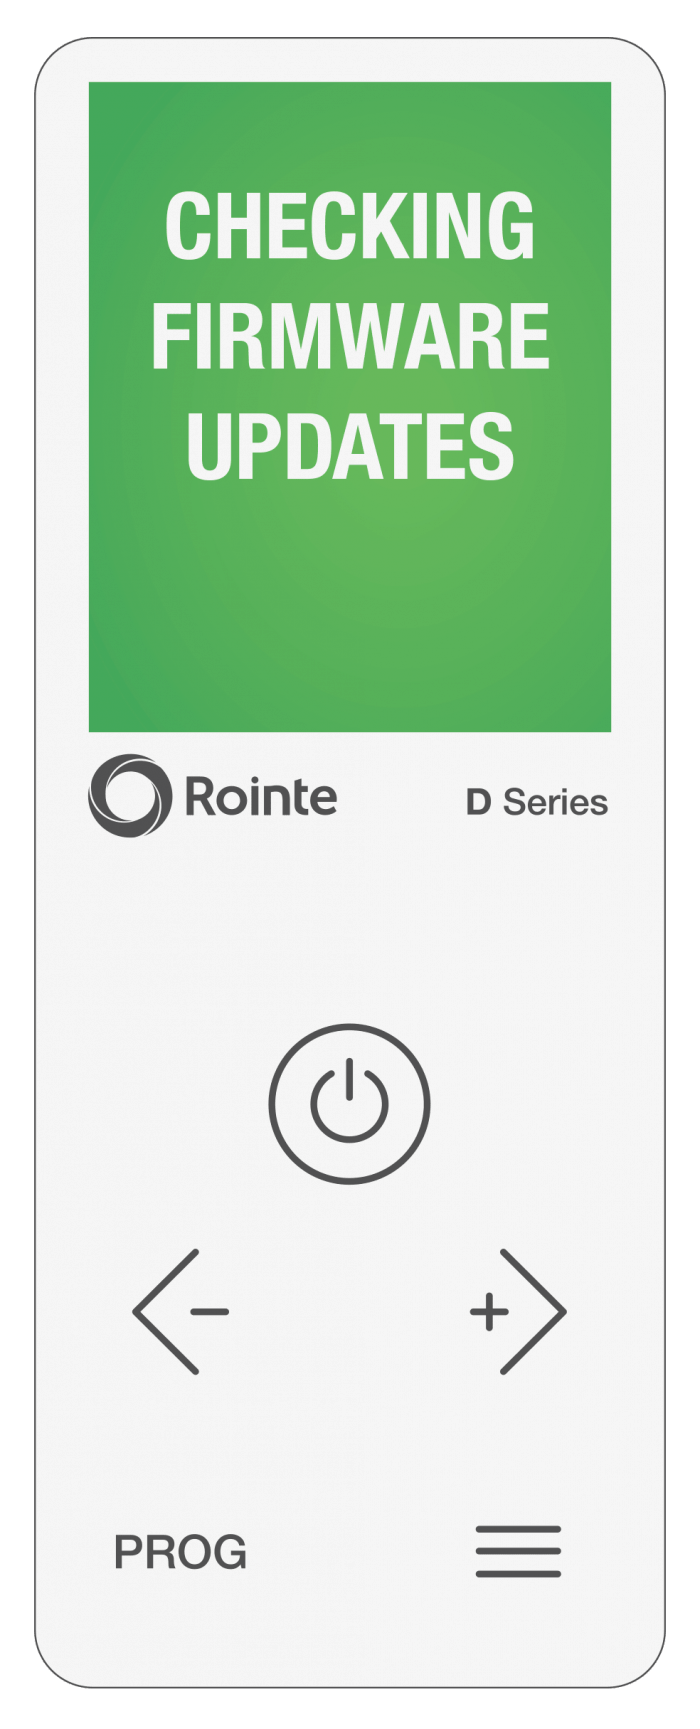 Rointe Connect app checking firmware/software updates screen